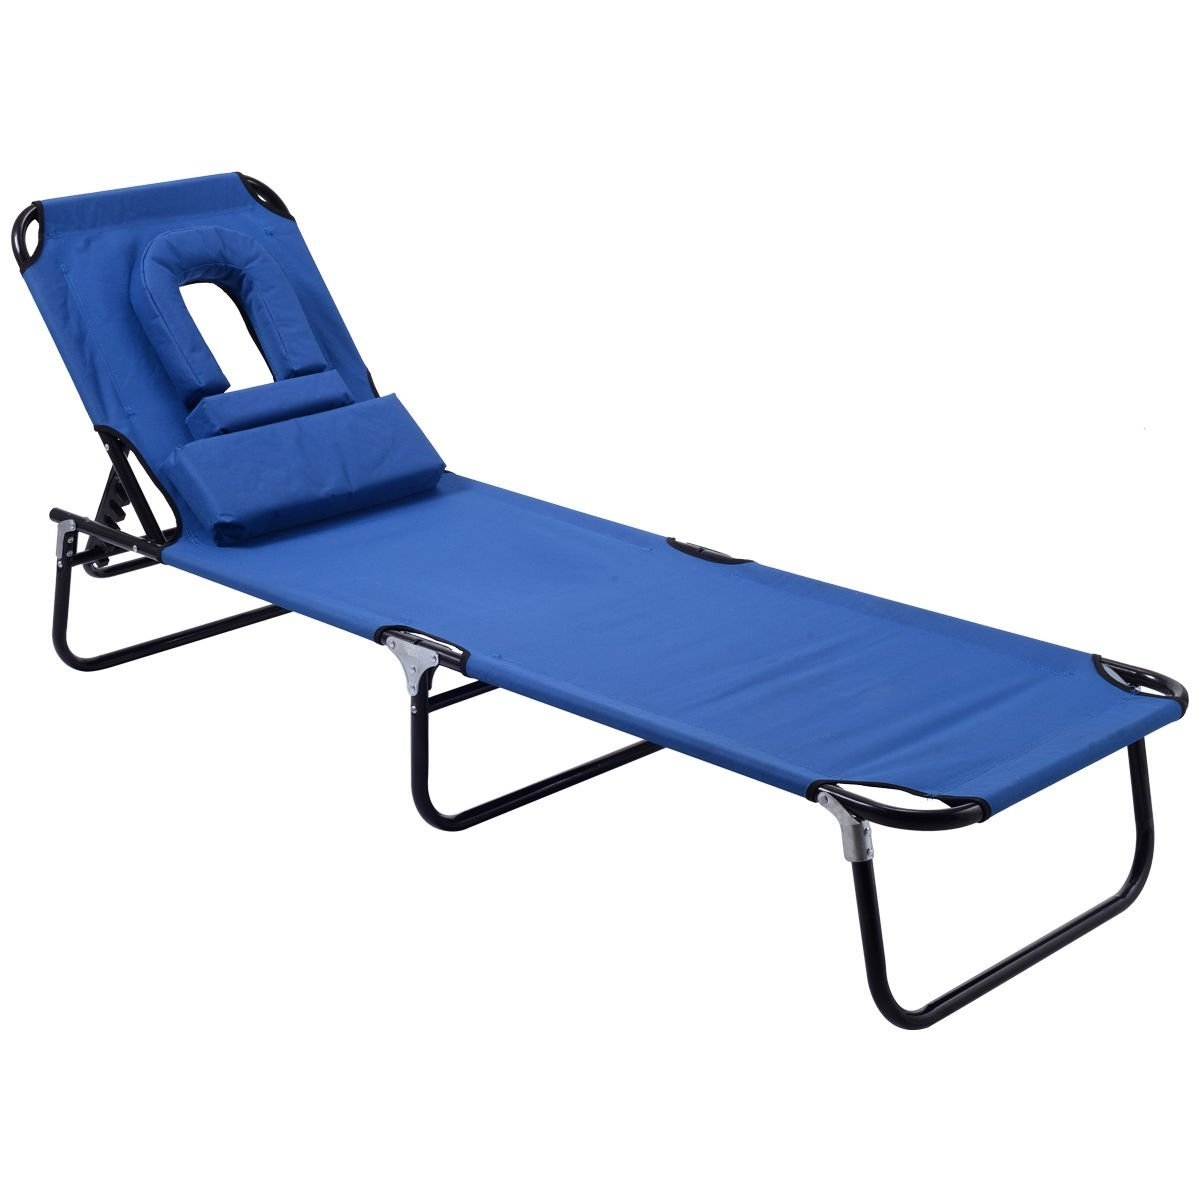 Beach Chaise Lounges Within Best And Newest Amazon: Goplus Folding Chaise Lounge Chair Bed Outdoor Patio (View 5 of 15)